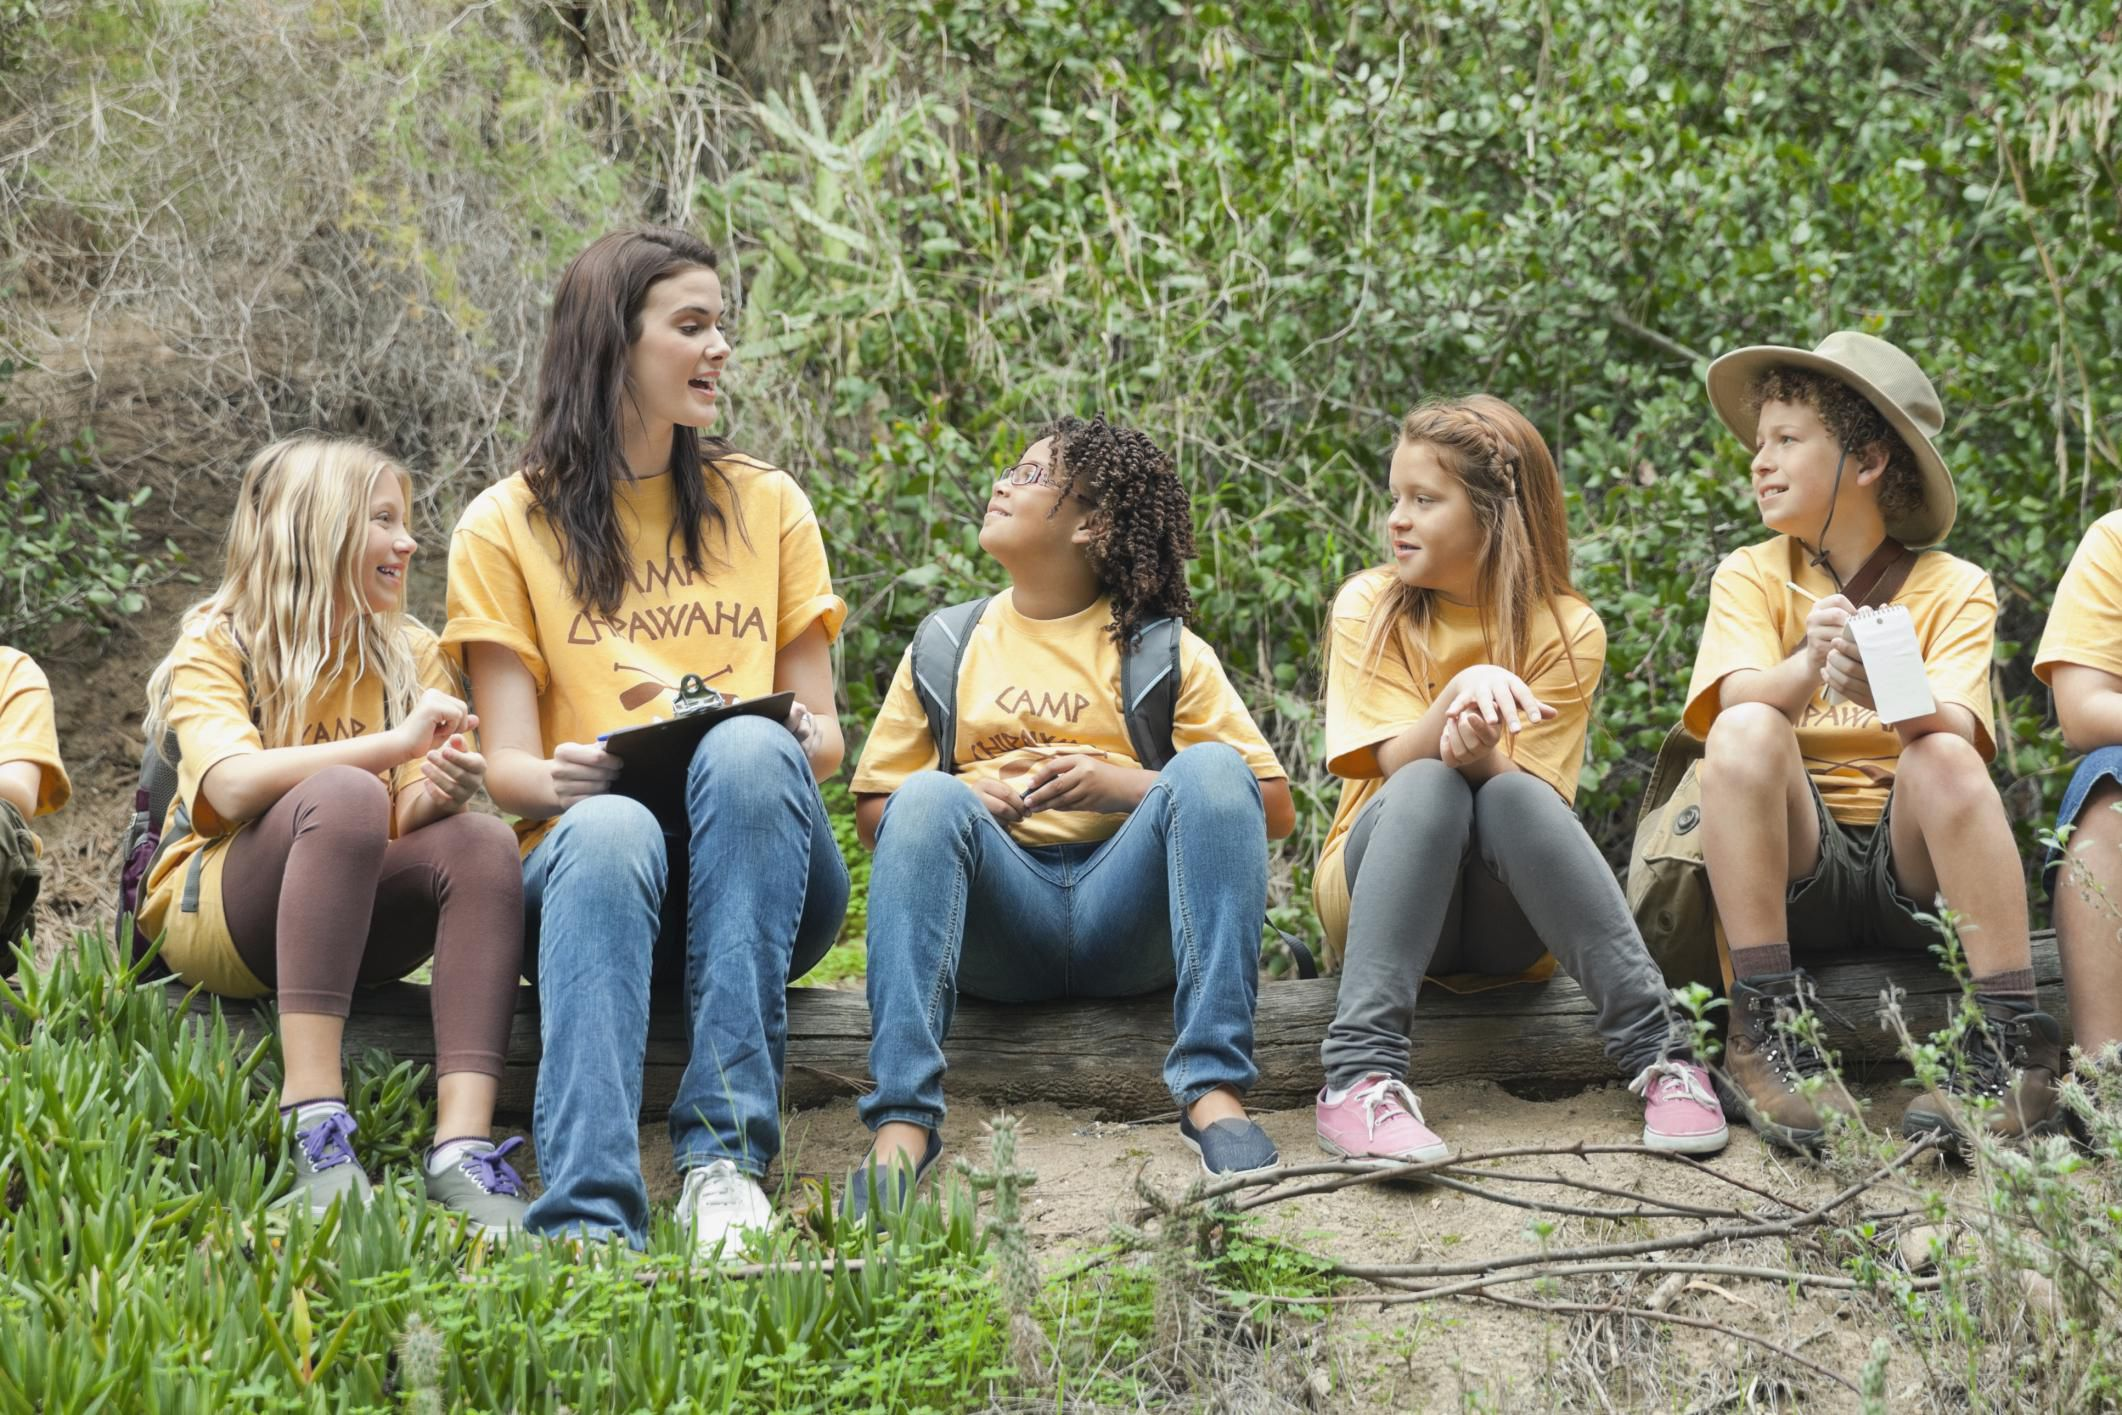 Top 9 Summer Camps For Ted Children